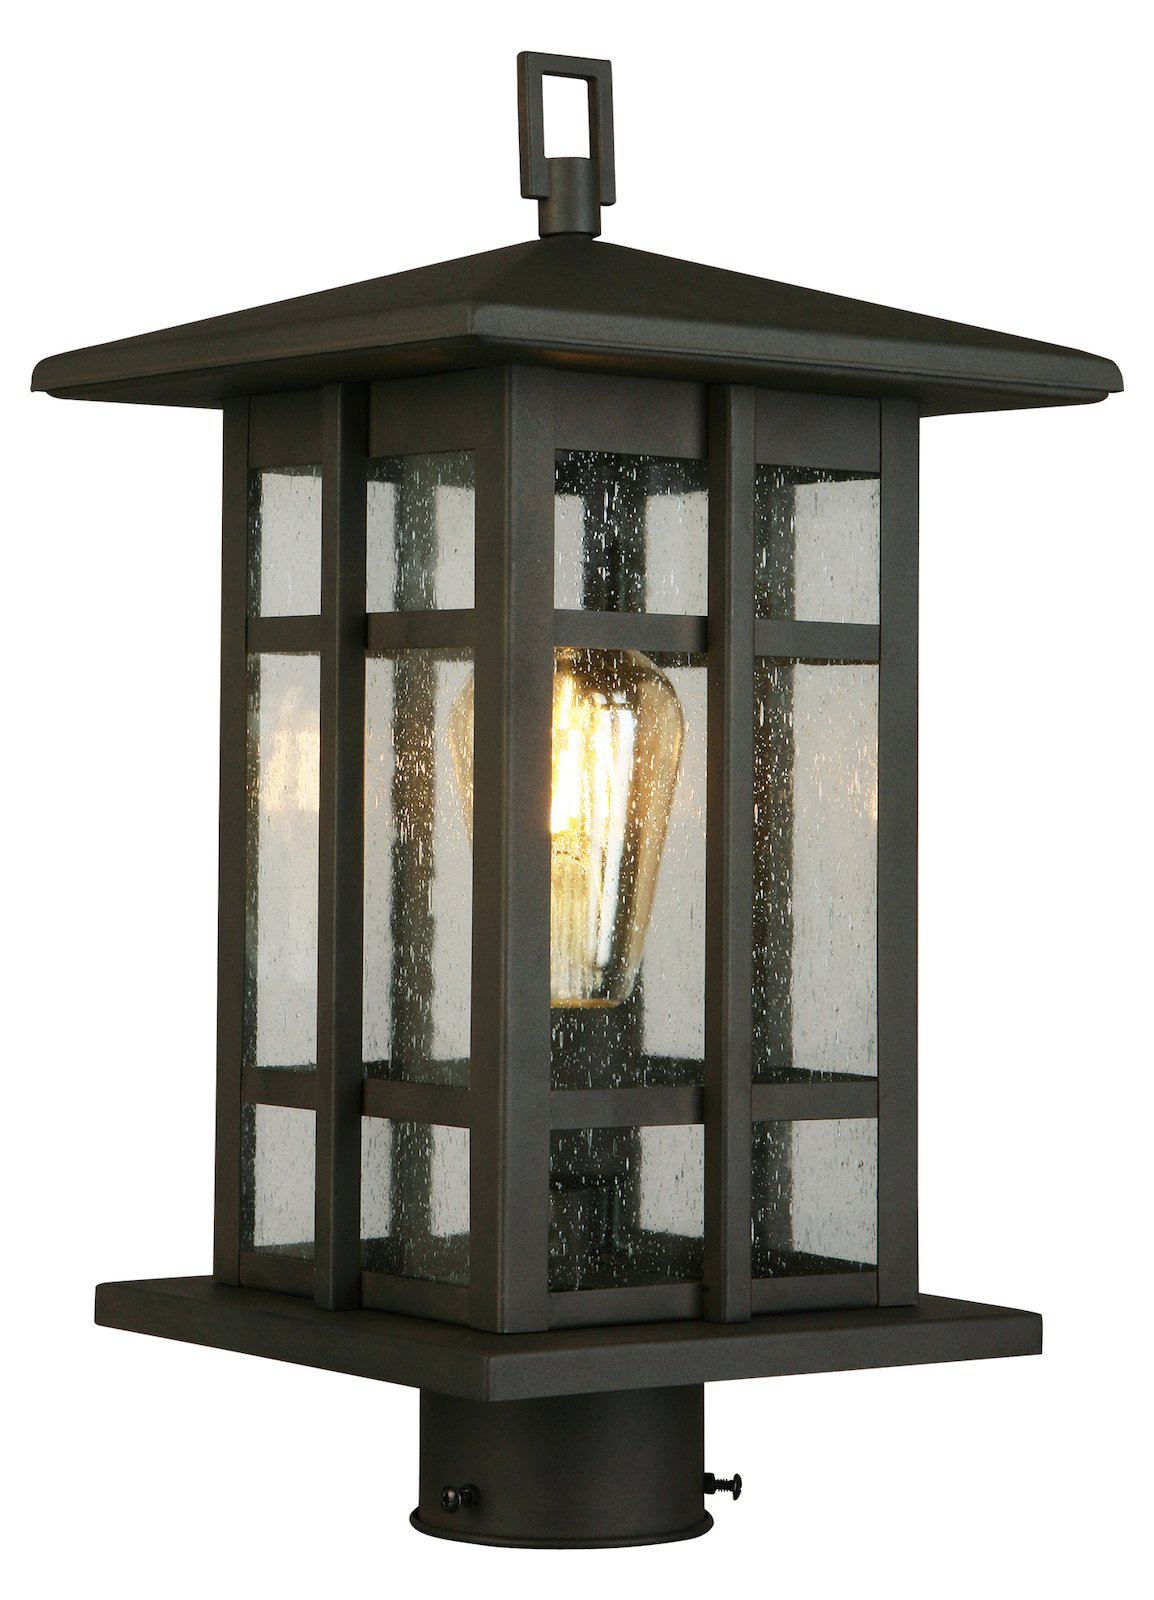 1X60W Outdoor Post Light W Matte Bronze Finish & Clear Seeded Glass